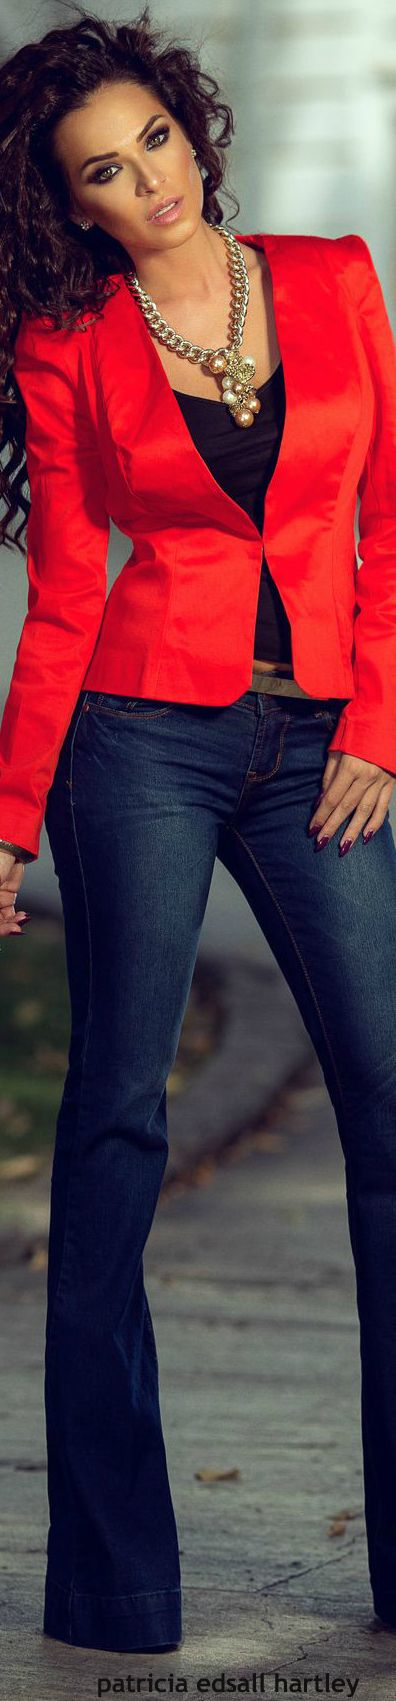 Red blazer and statement necklace